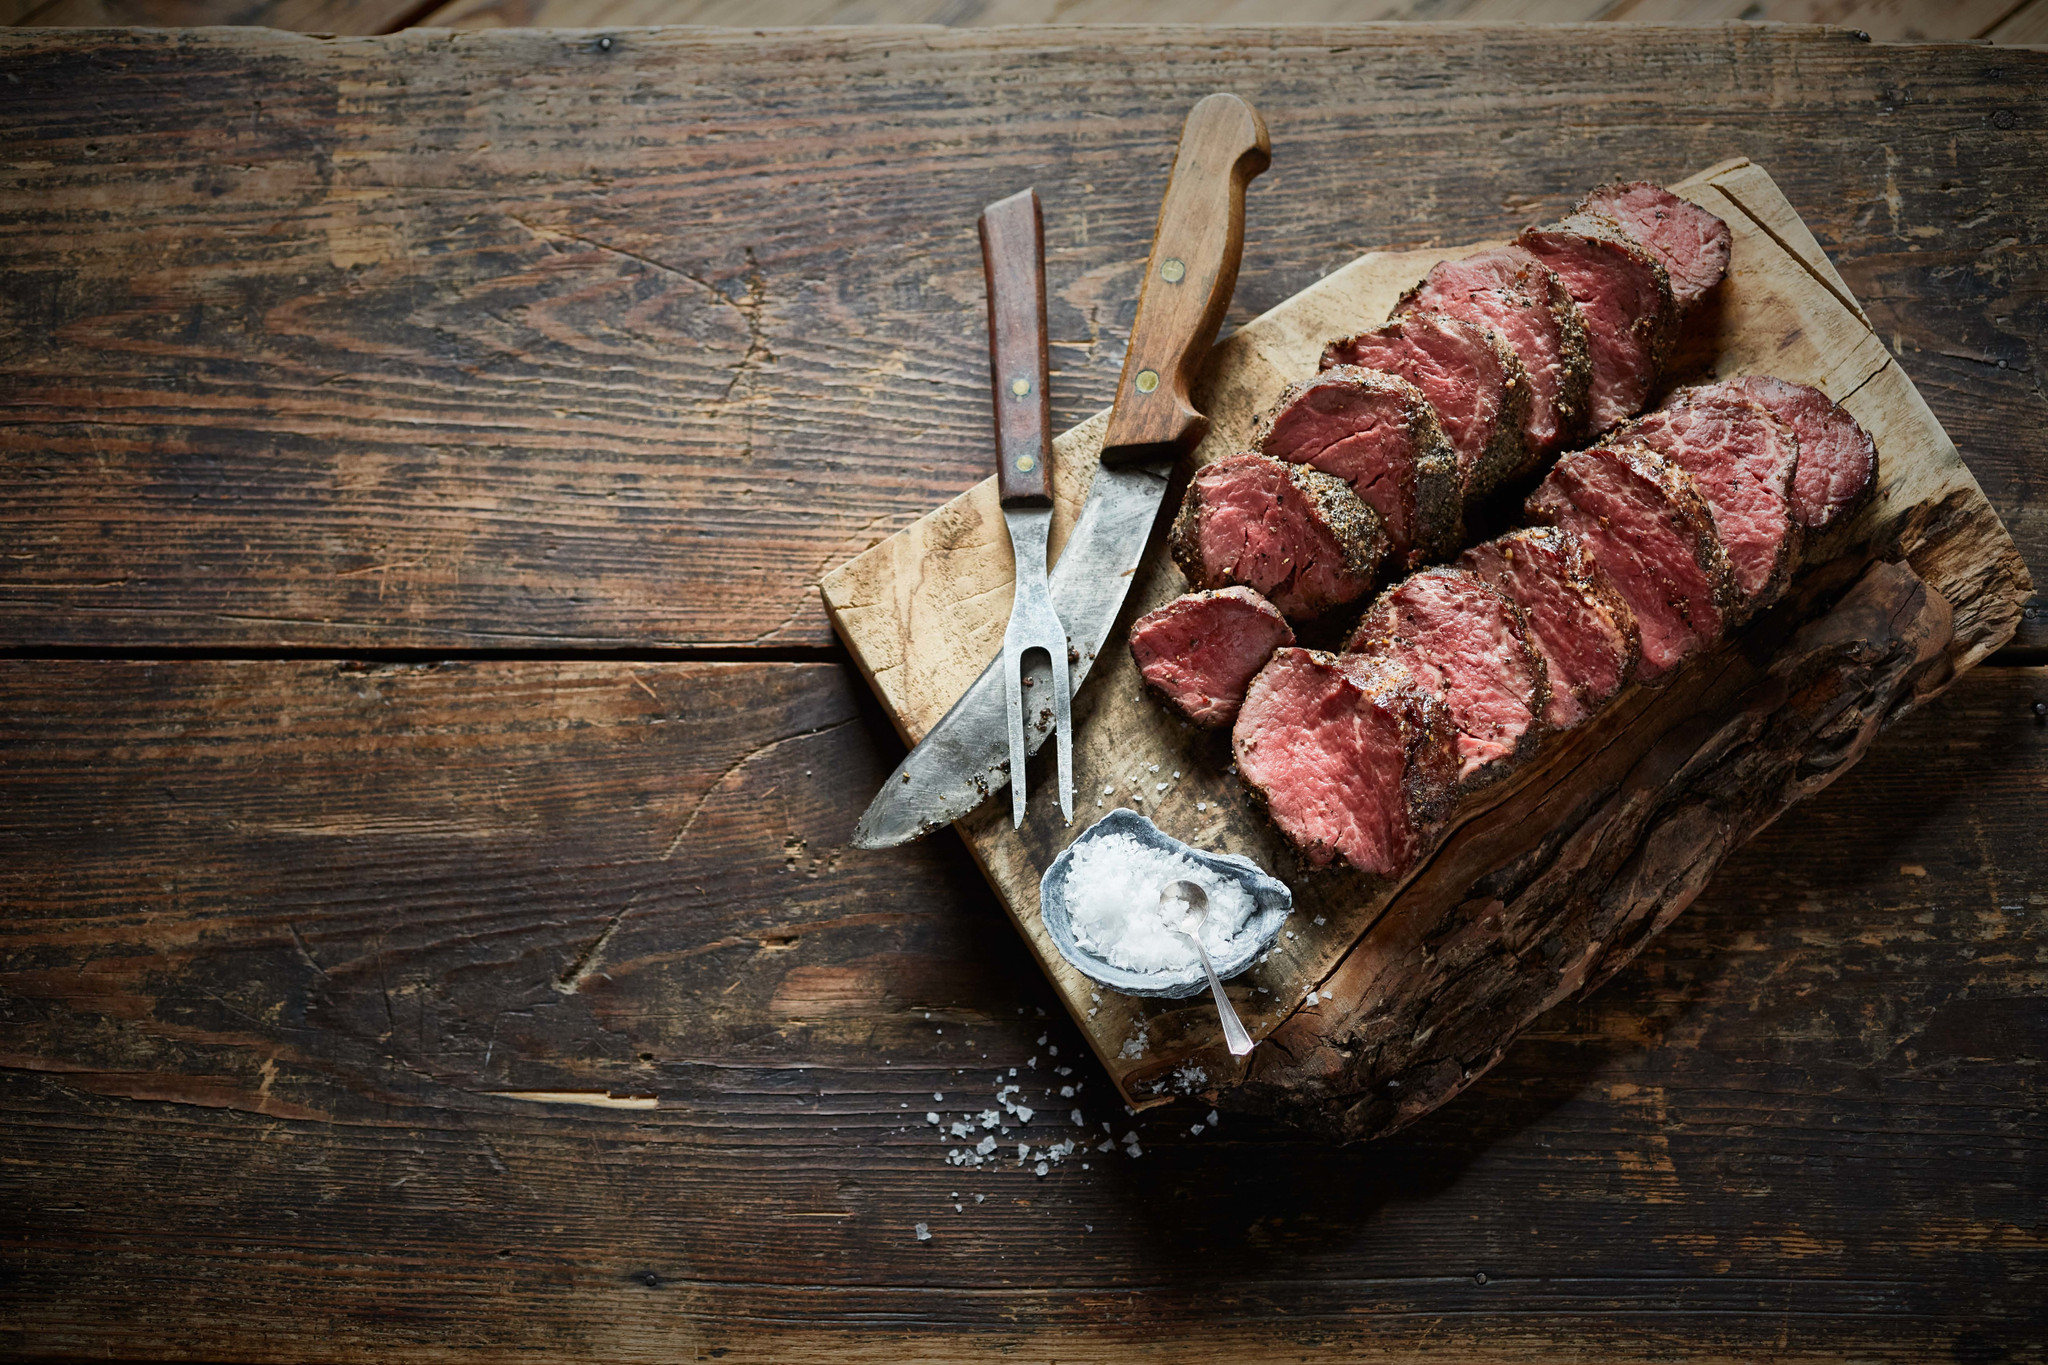 Smoked Beef Tenderloin that is sliced and laid neatly on a wooden cutting board next to a bowl of seasoning salt.